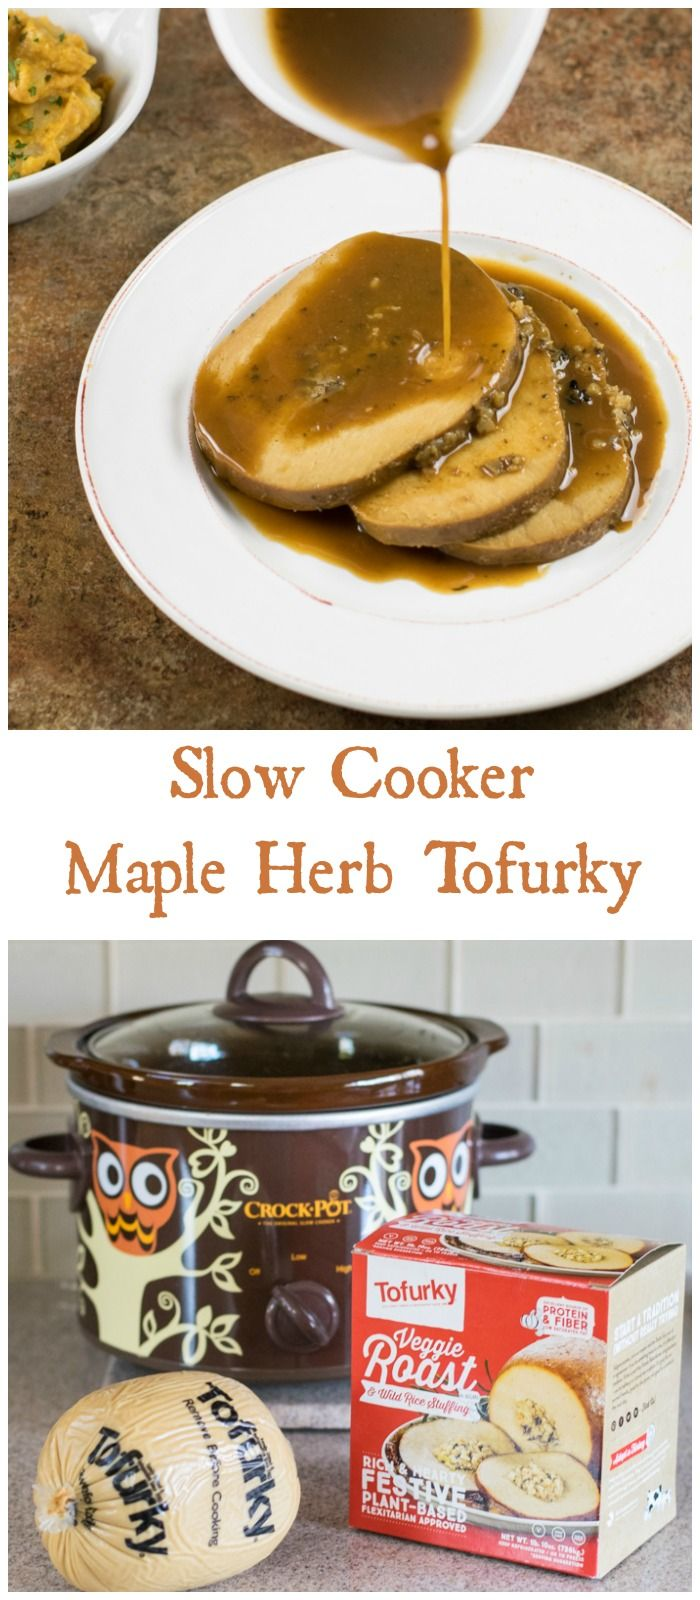 Slow Cooker Maple Herb Tofurky is awesome vegan comfort food!